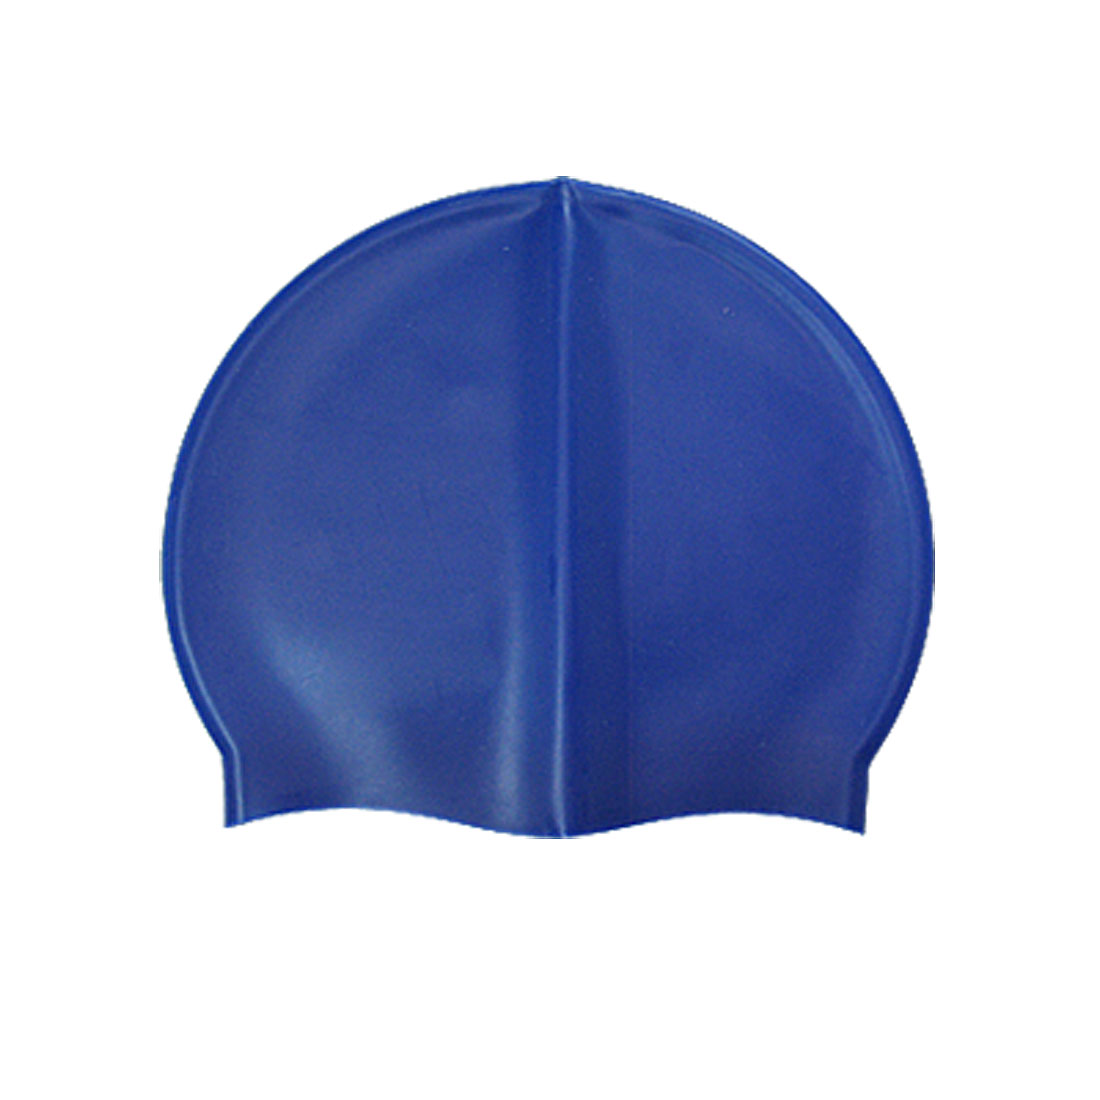 Adults Blue Nonslip Swimming Hat Siclicone Swim Cap